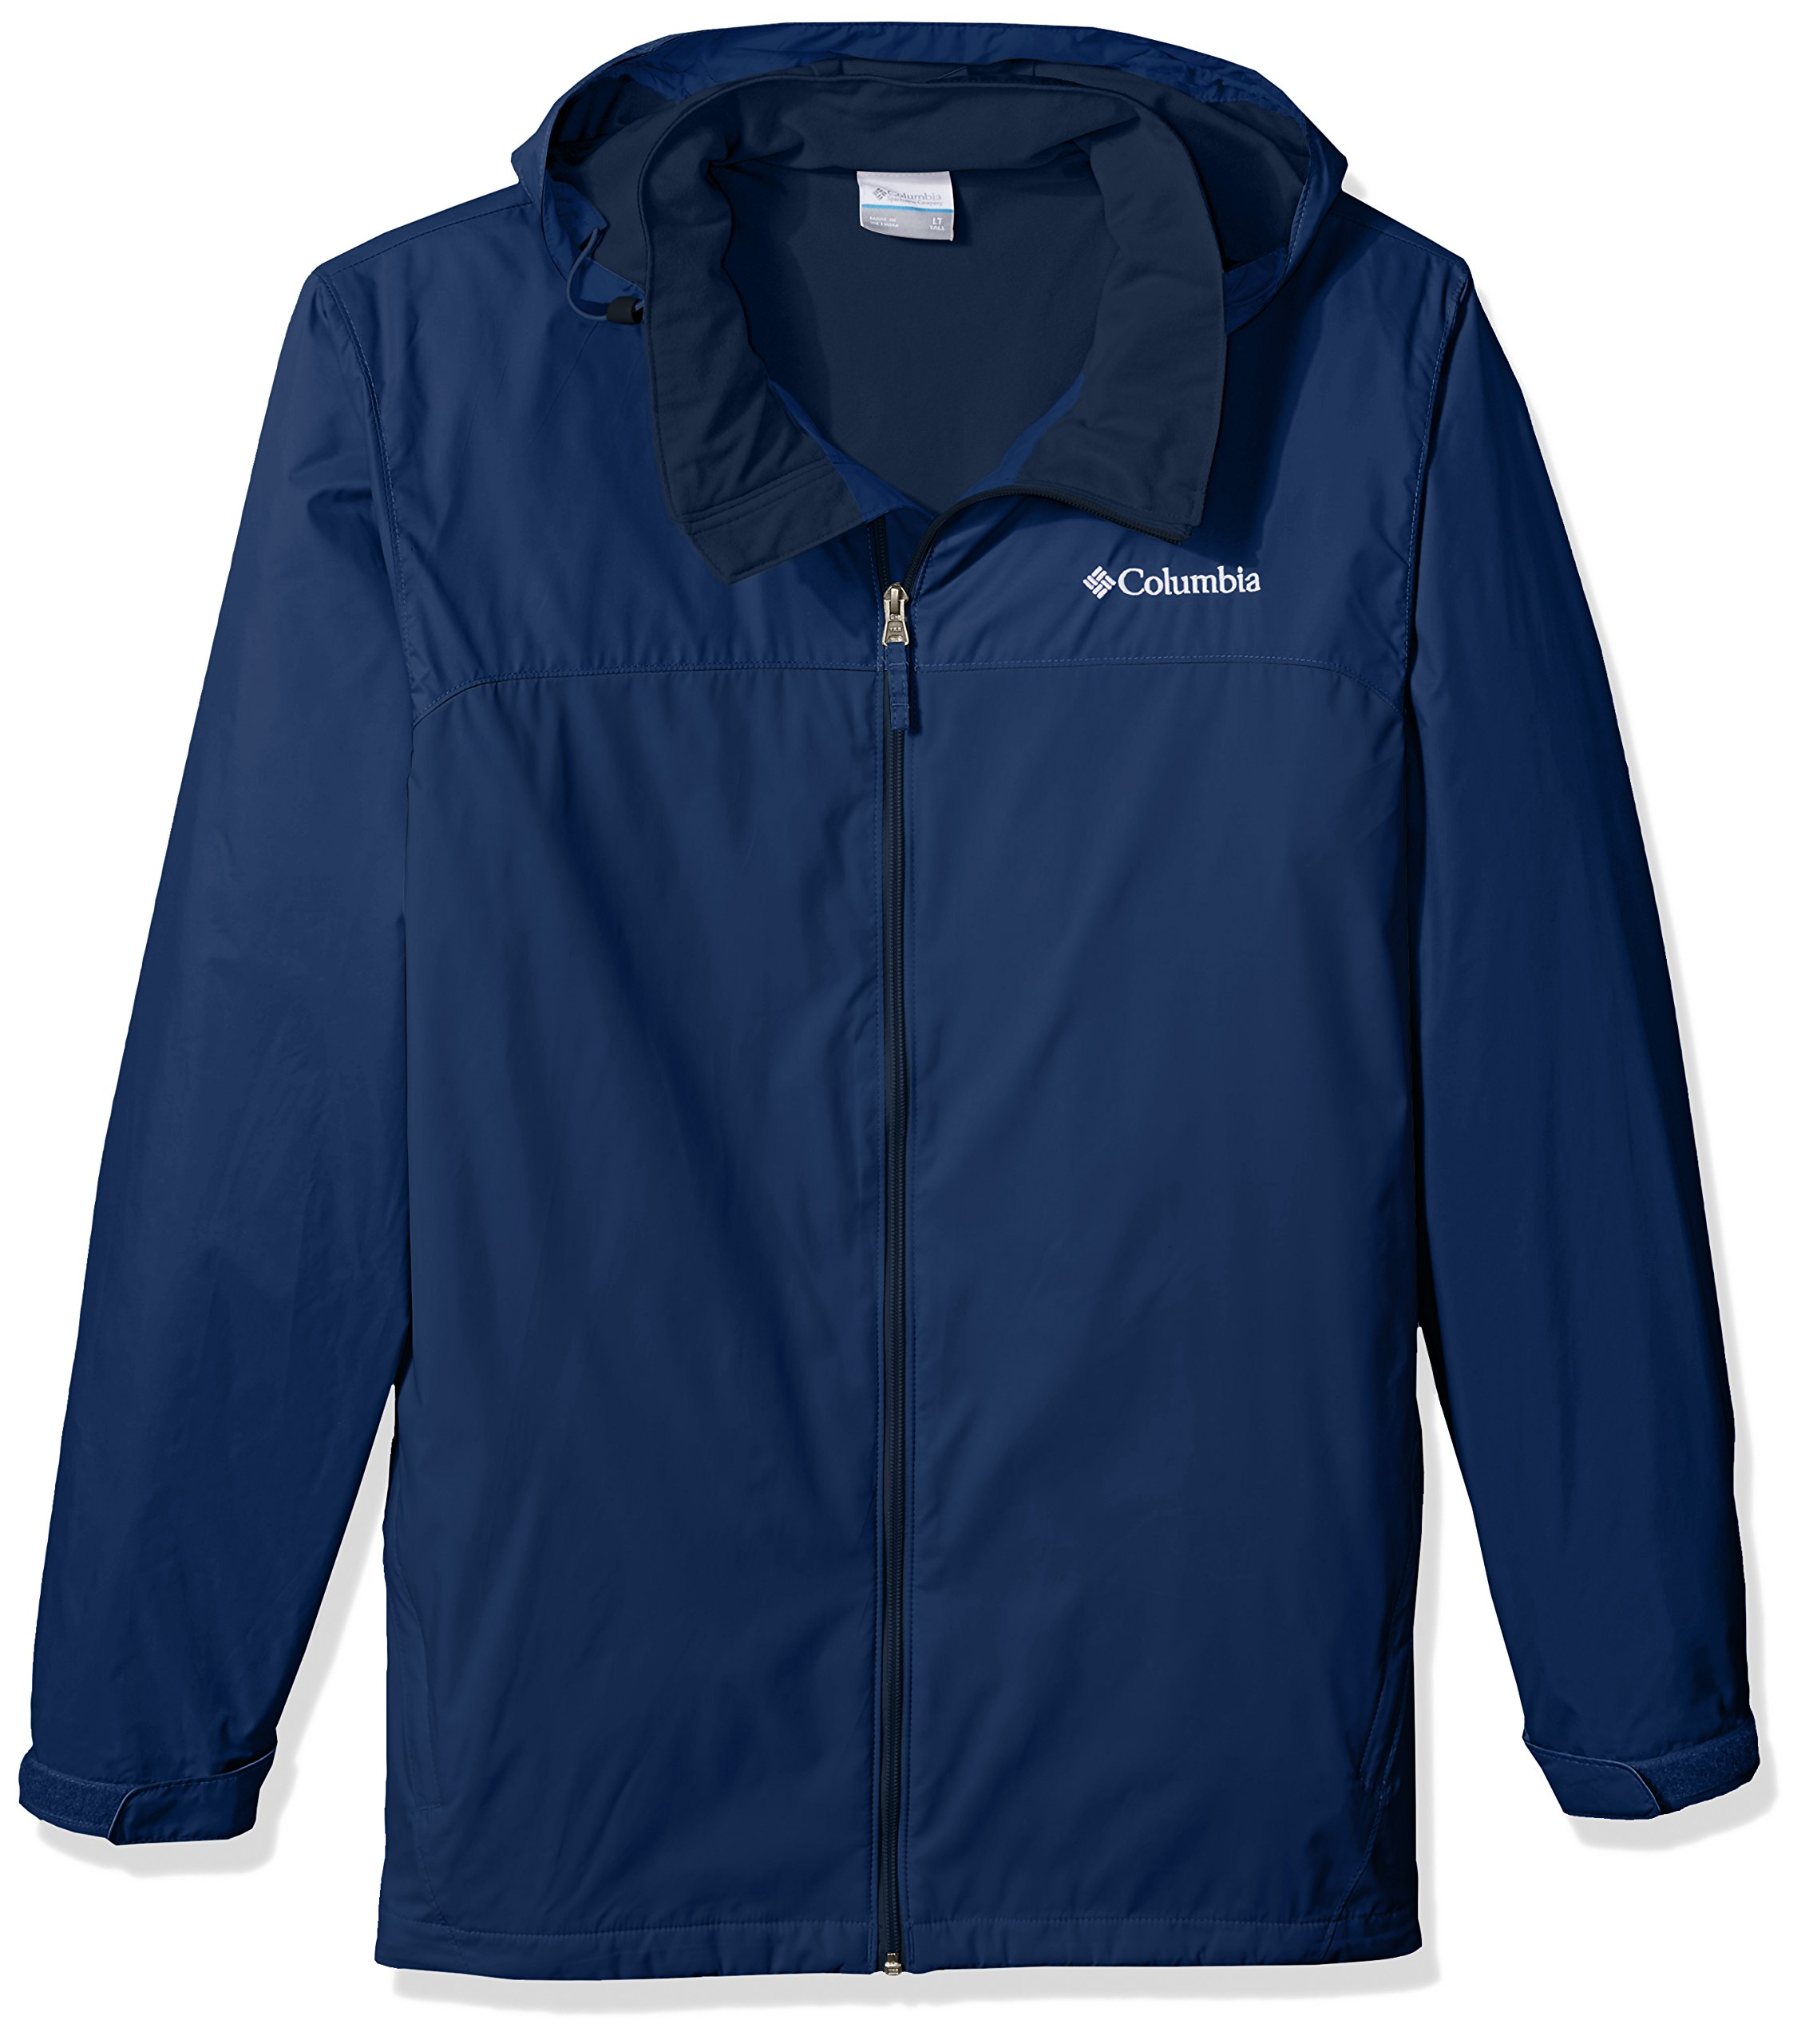 Columbia Men's Big and Tall Glennaker Lake Lined Rain Jacket, Carbon, 4X